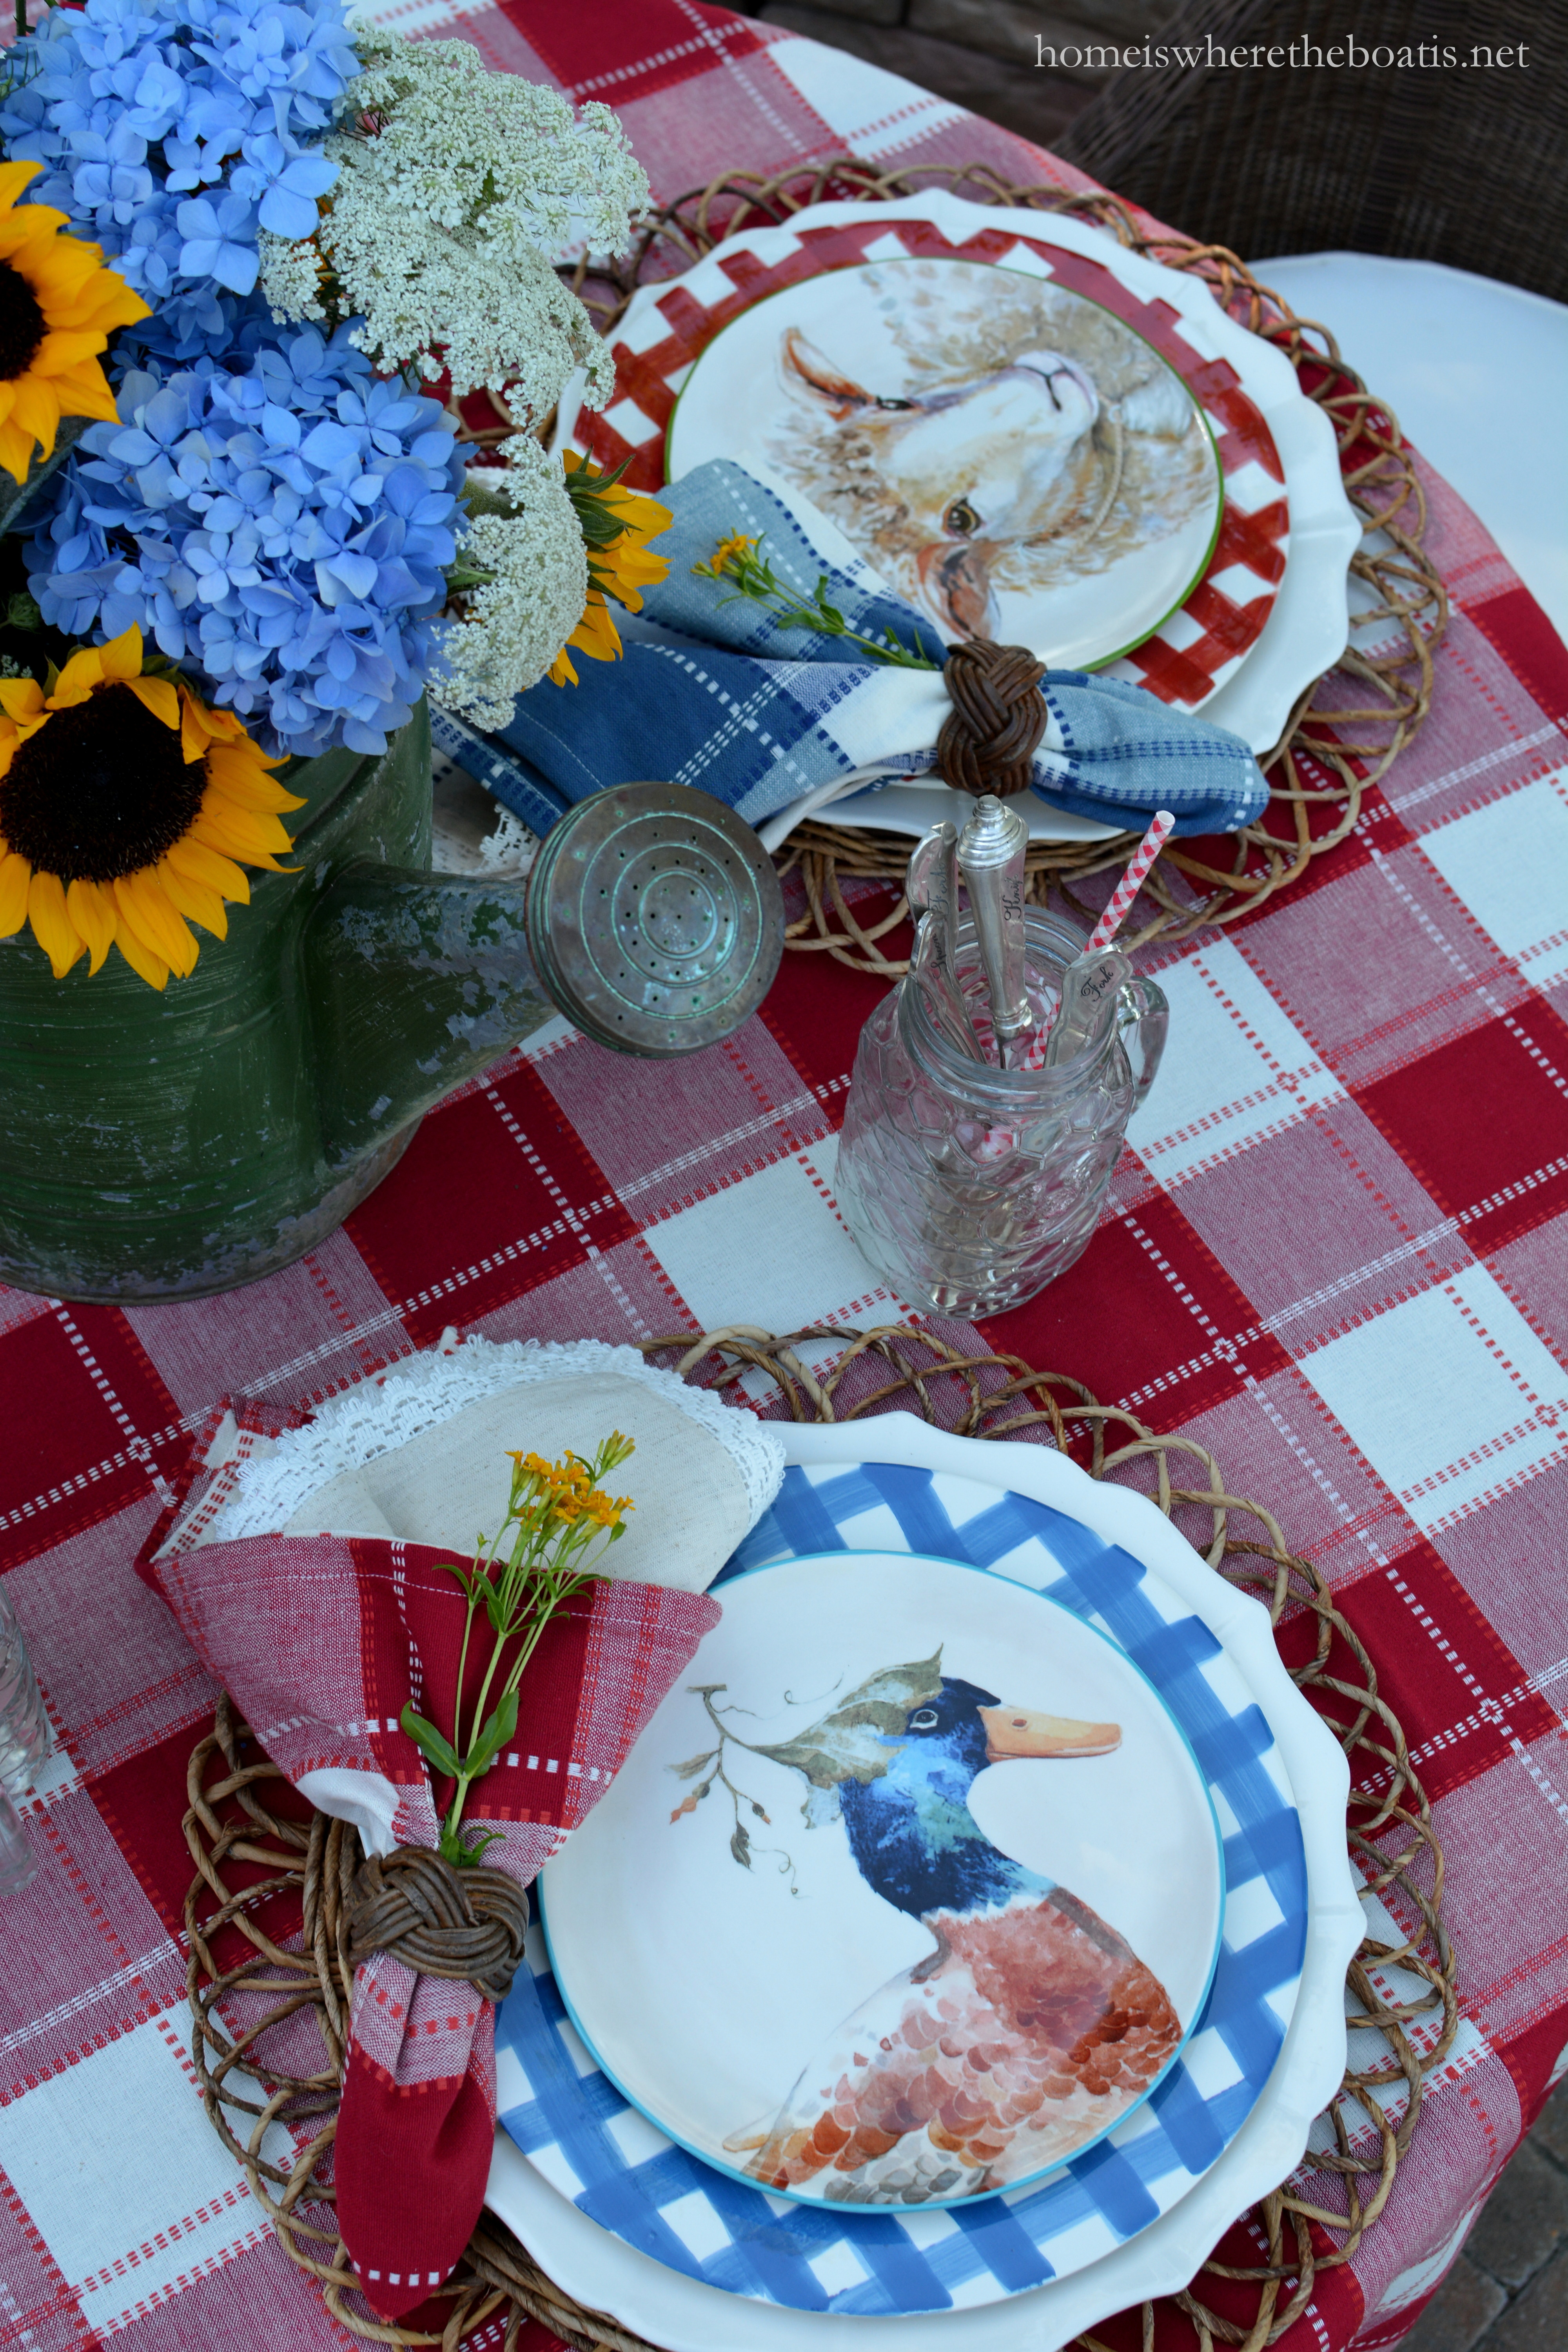 Quackers Trudie Dottie and Clooney all ready to serve up smiles and a little whimsy at the table. & Farm to Table Whimsy: Plaid and Barnyard Animals u2013 Home is Where the ...